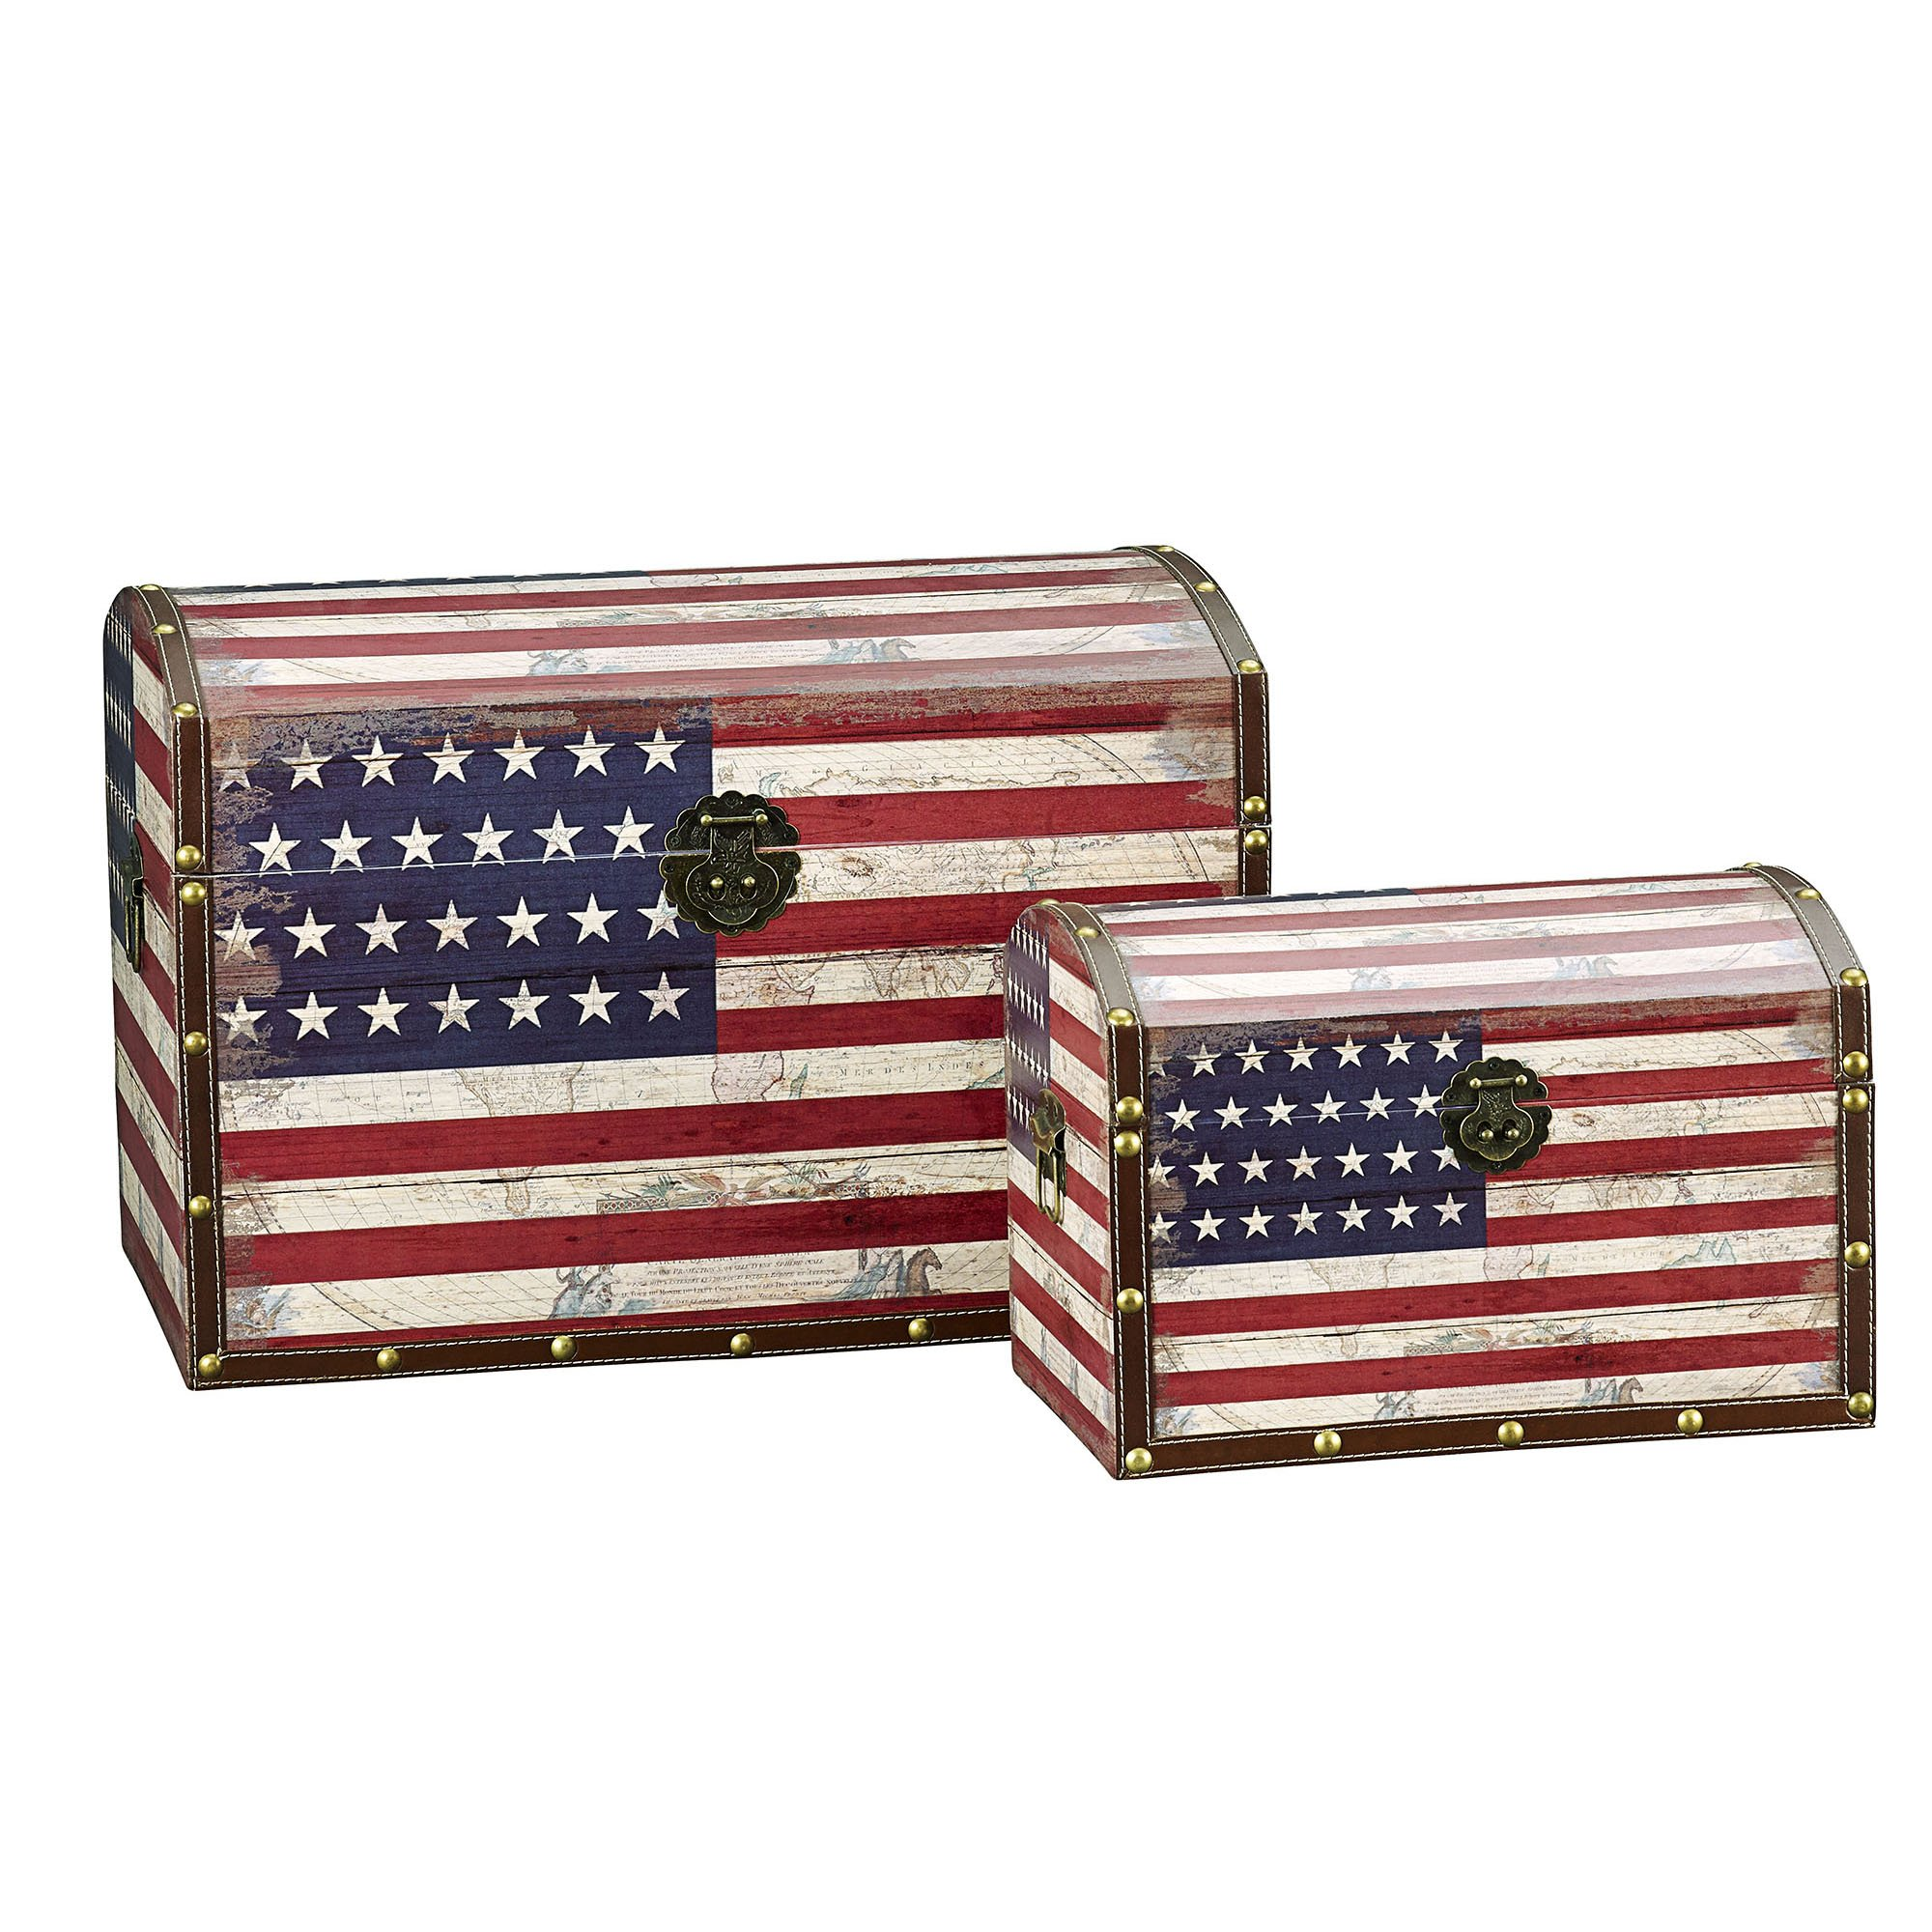 Household Essentials Decorative Storage Trunk, American Flag Design, Jumbo and Medium, Set of 2 by Household Essentials